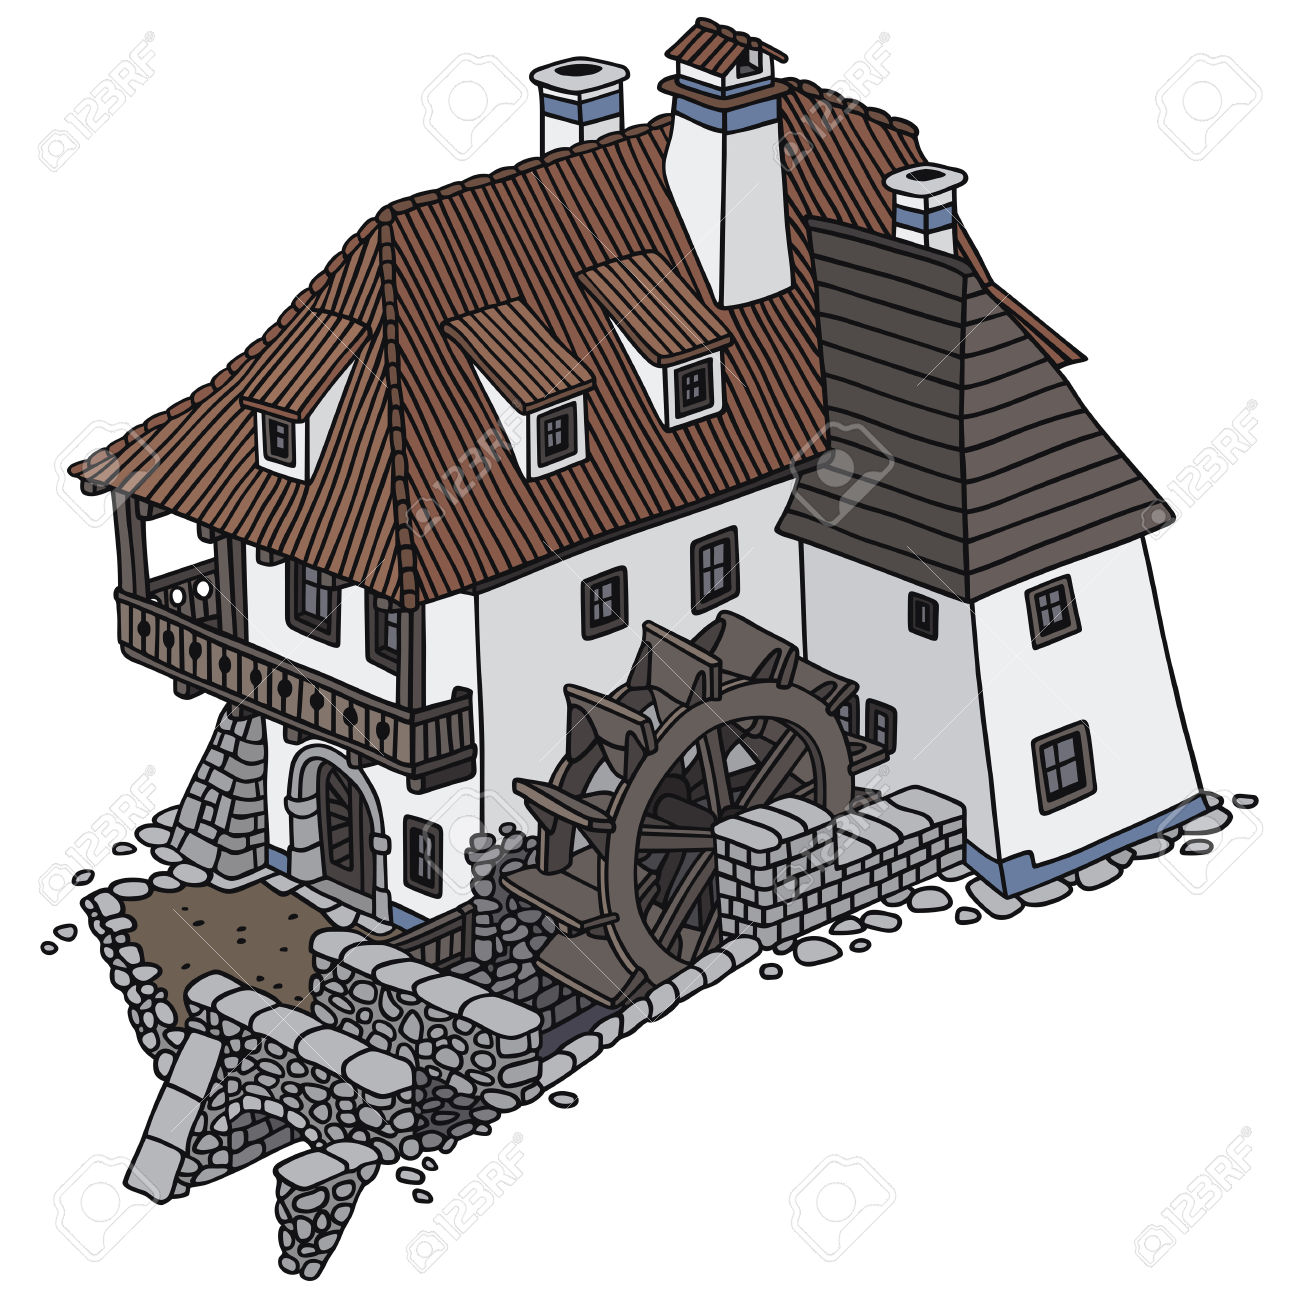 Water Wheel Clip Art : Old water mill clipart clipground